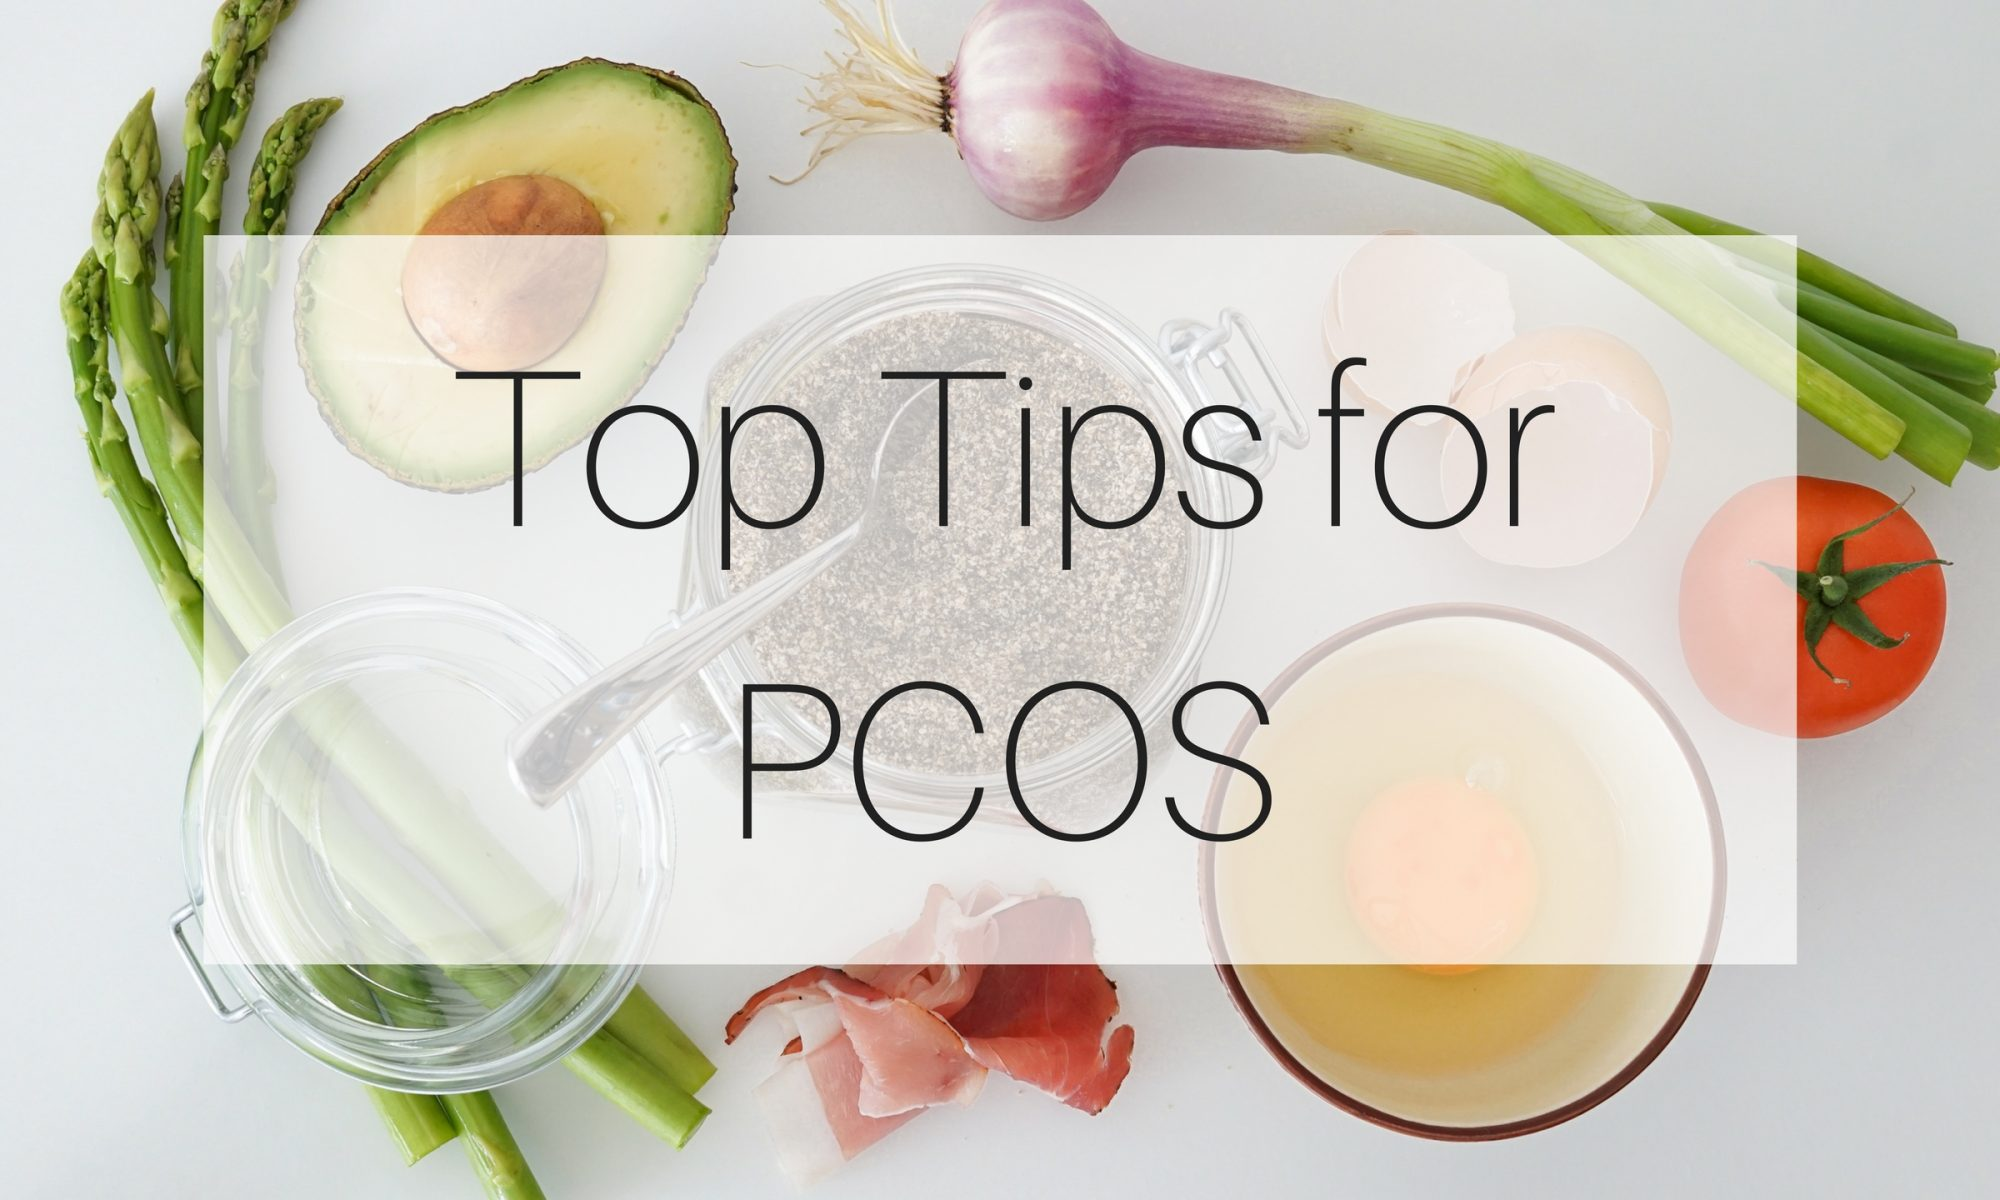 Top Tips for PCOS